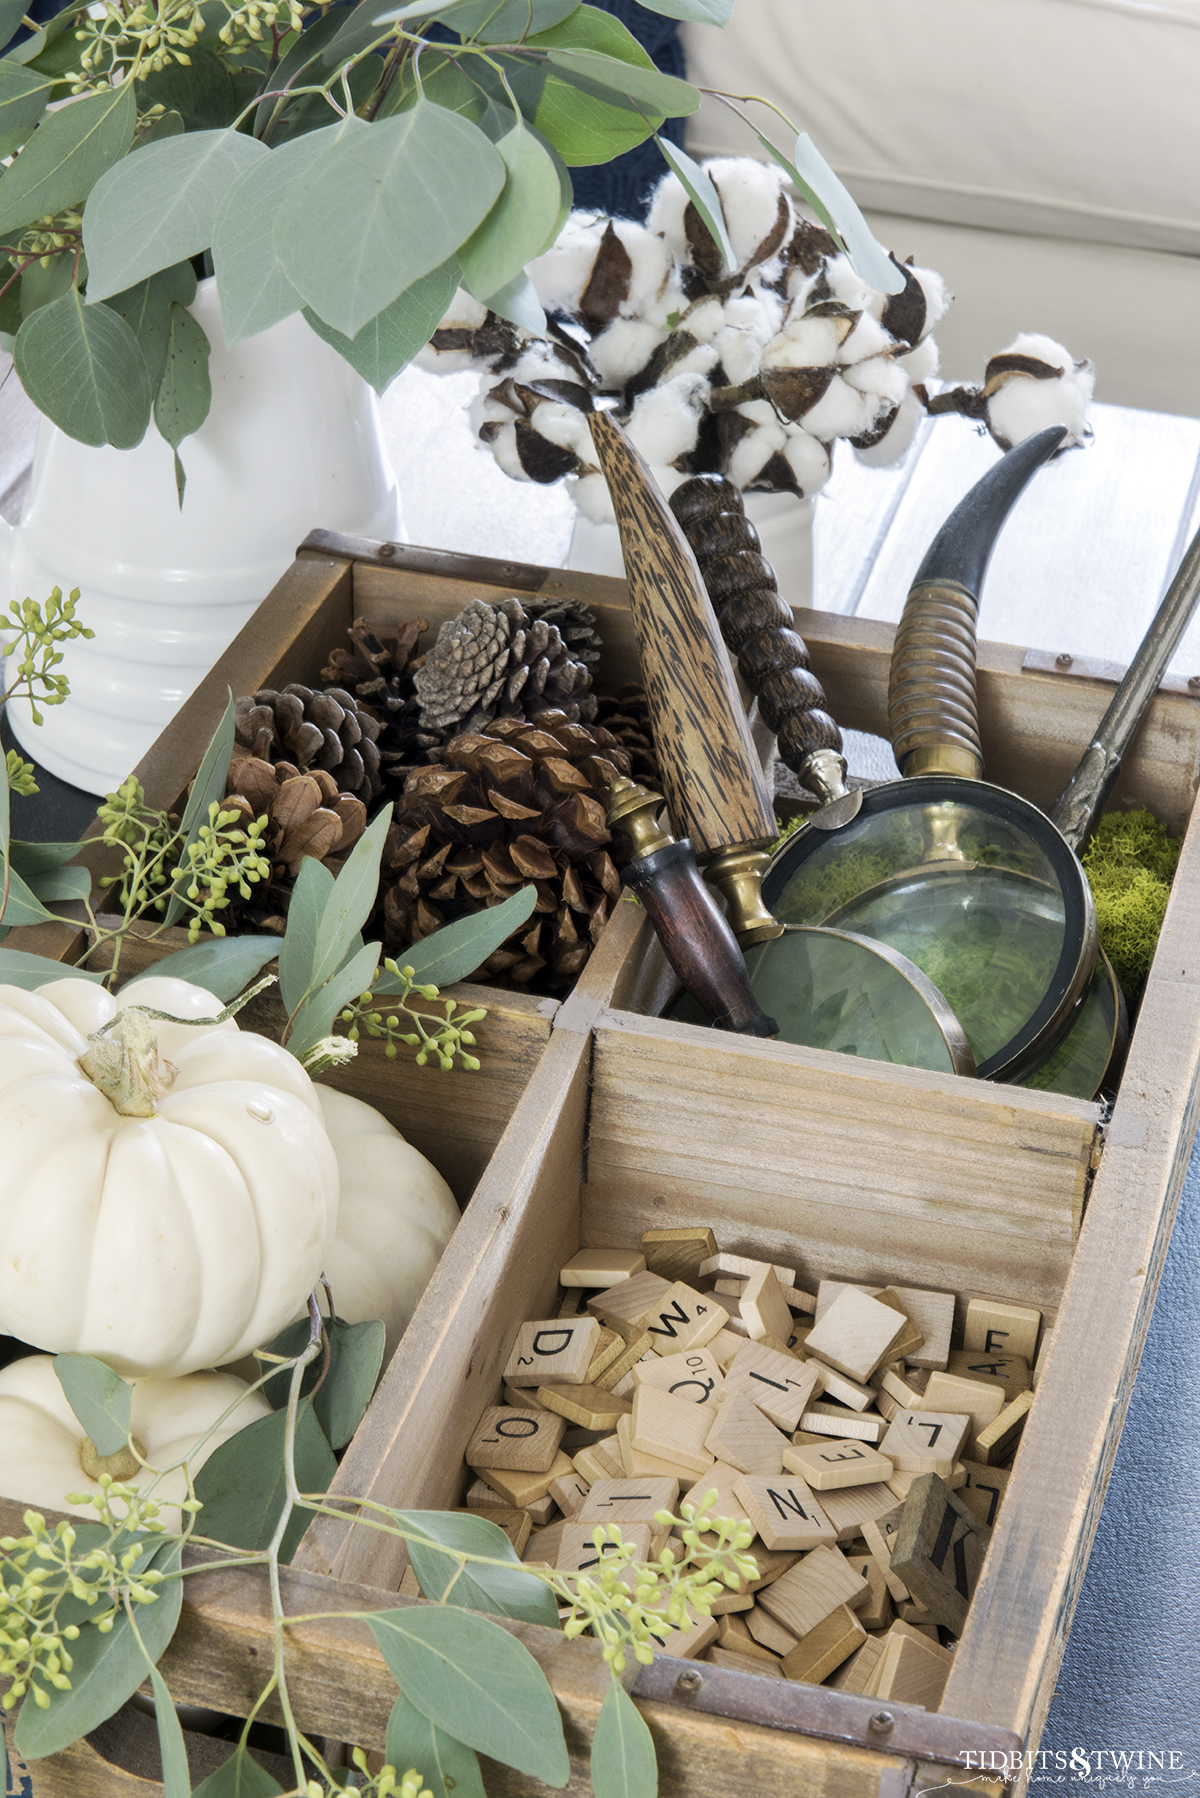 Wooden tray with compartments holding Fall items like pumpkins, pinecones and wooden scrabble tiles